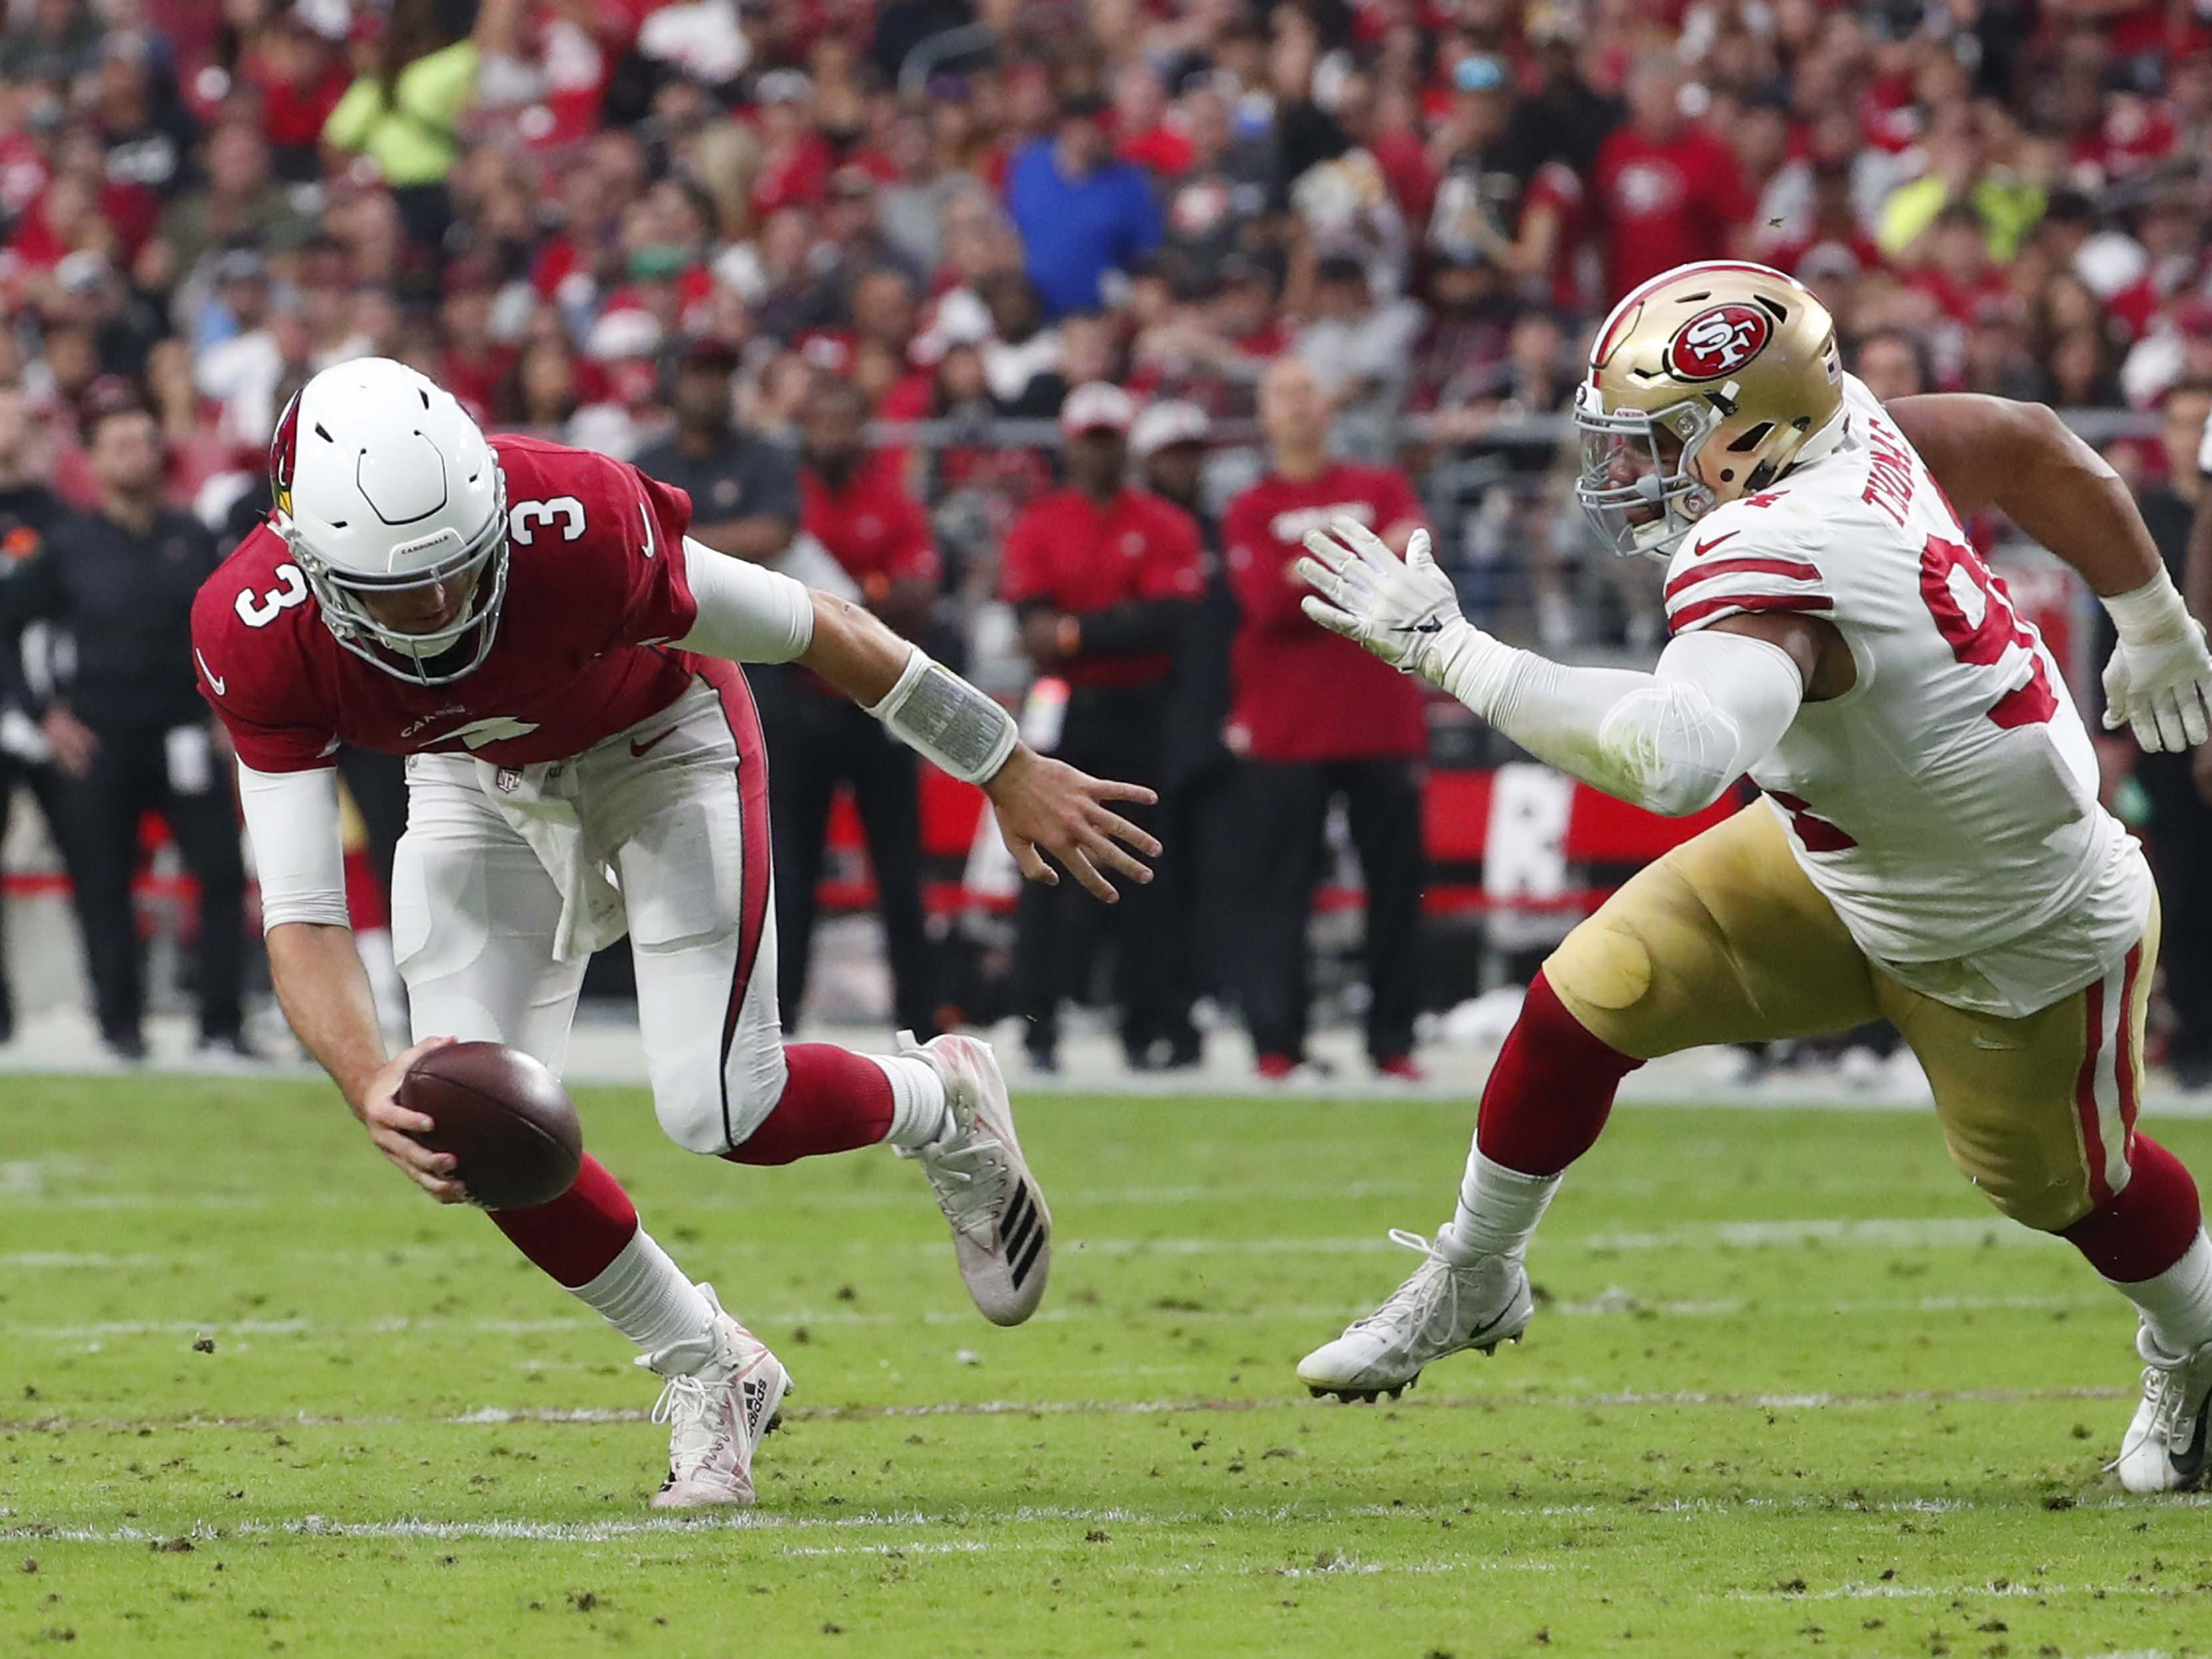 Arizona Cardinals quarterback Josh Rosen (3) scrambles away from San Francisco 49ers defensive end Solomon Thomas (94) in the second quarter during NFL action against the San Francisco 49ers on Oct. 28 at State Farm Stadium.